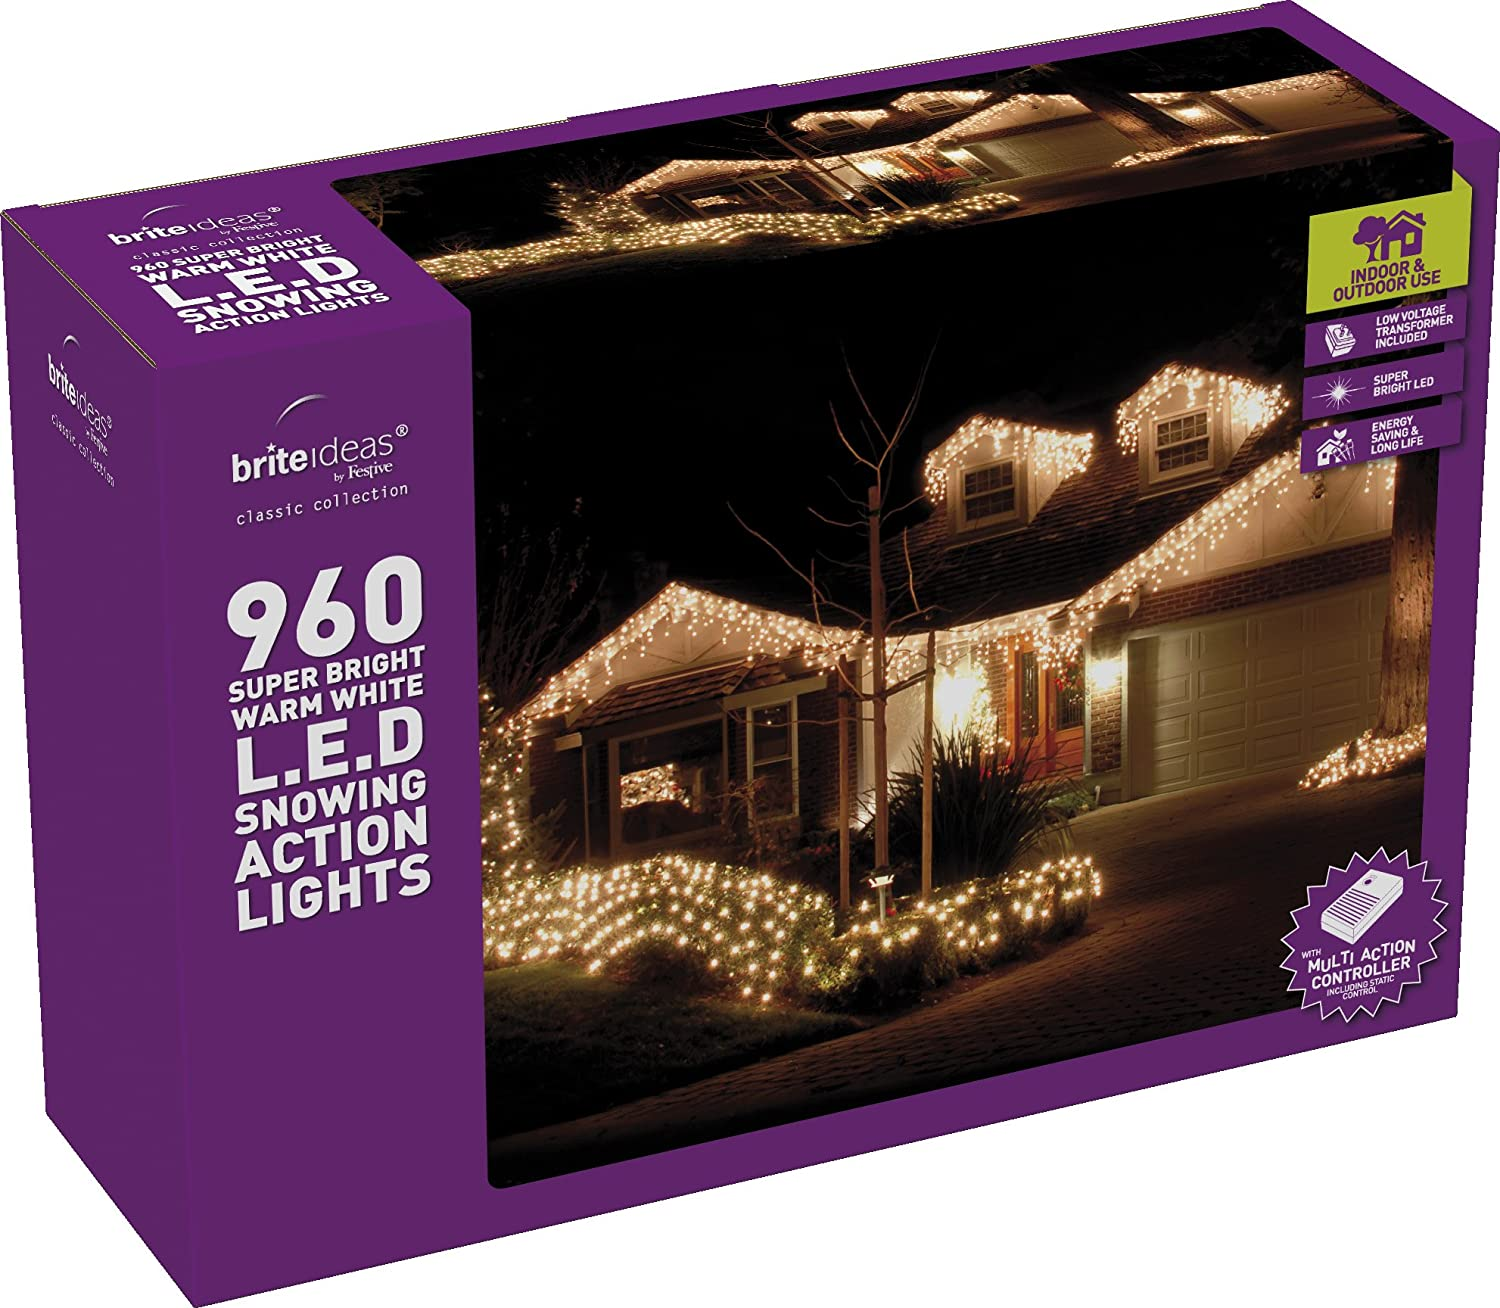 Festive productions snowing icicle 960 led lights warm white festive productions snowing icicle 960 led lights warm white amazon lighting mozeypictures Choice Image